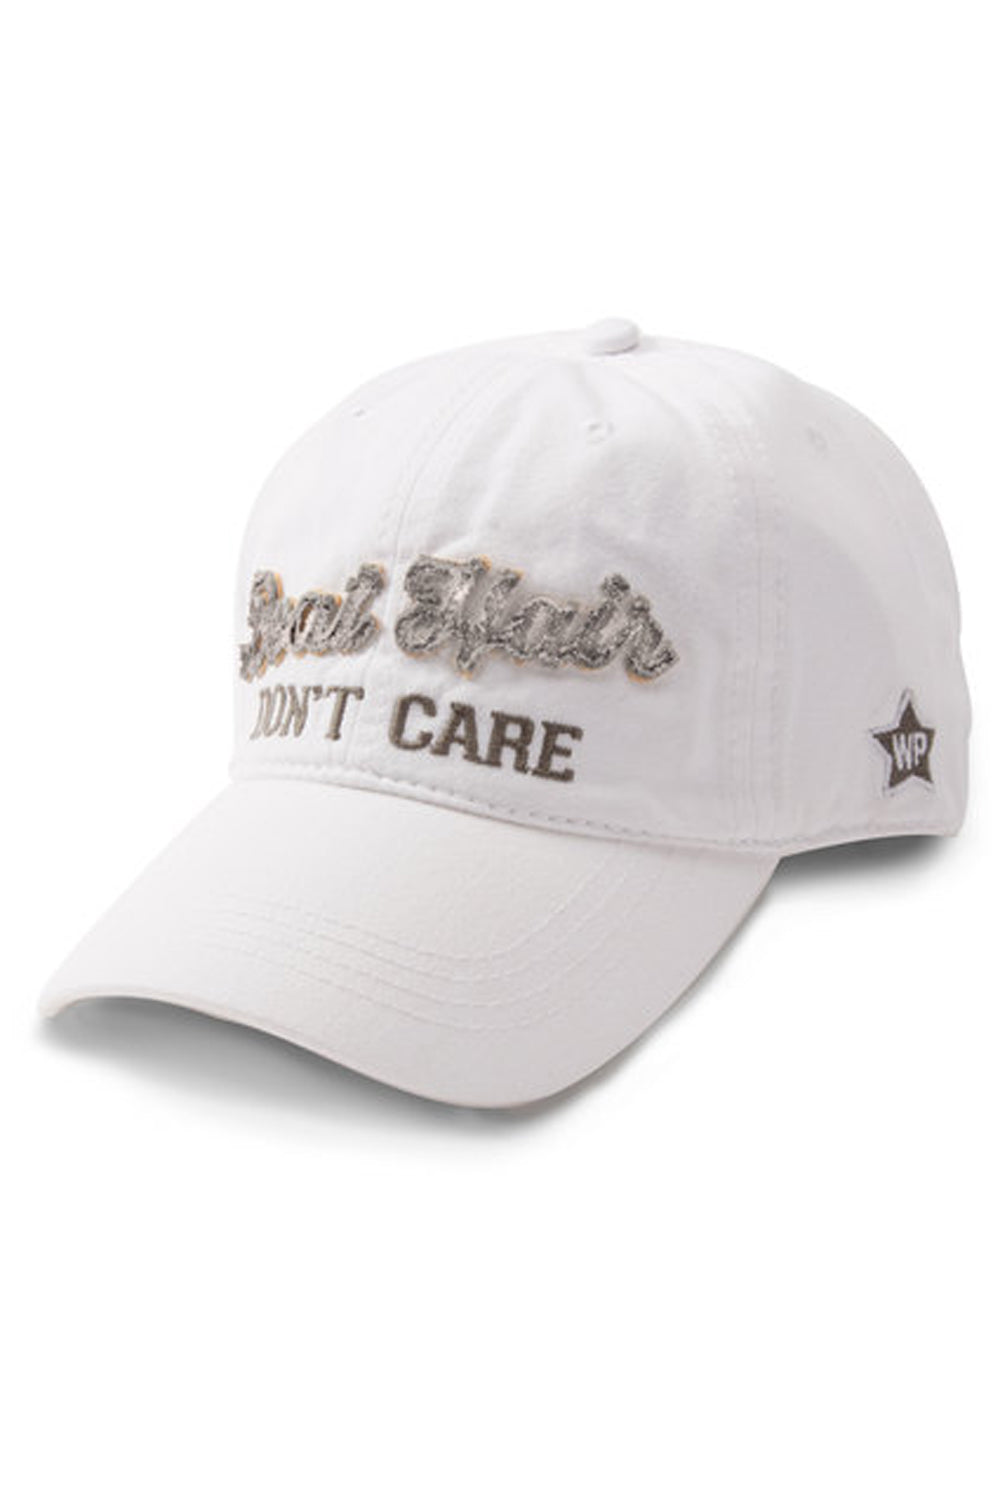 Adjustable Hat - Boat Hair Don't Care